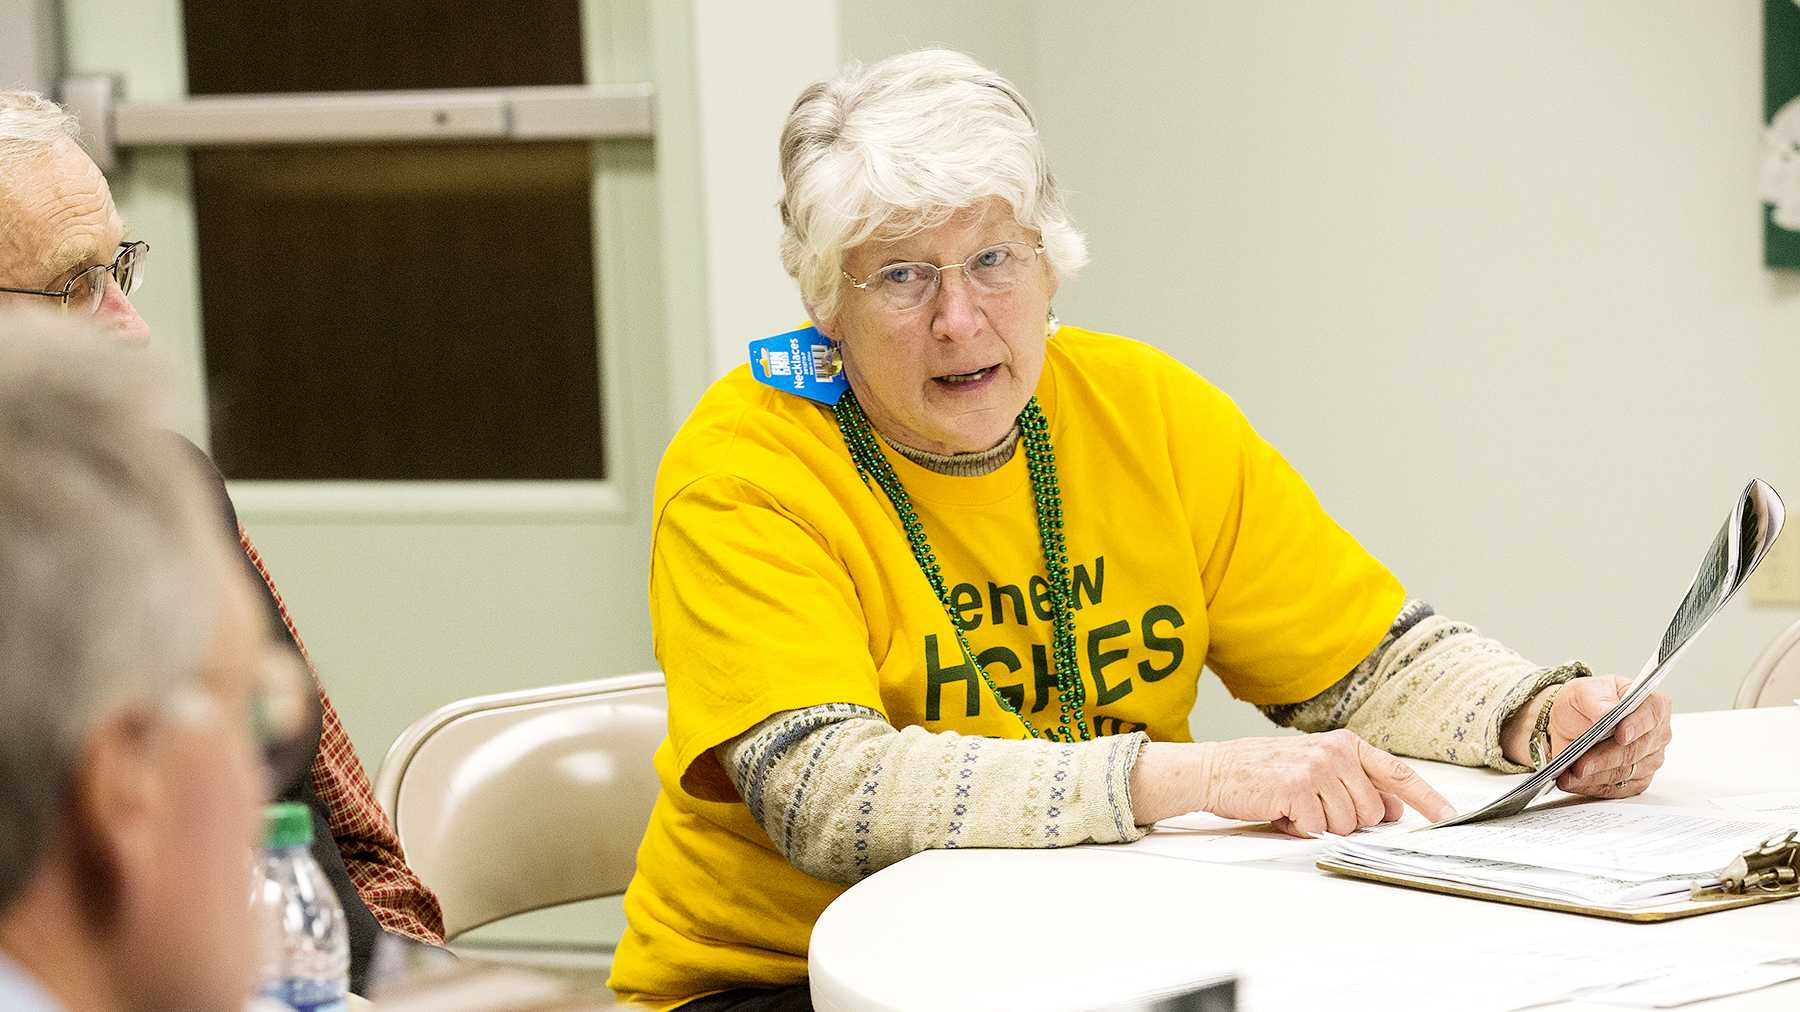 Fort Collins resident Jean Yule talks about the possibility of writing a letter to the editor at the Save Our Stadium Hughes meeting at the Westminster Presbyterian Church Wednesday night. The article called into question was seen in Colorado State's alumni magazine and featured the plans and philosophy behind the proposed on-campus stadium.